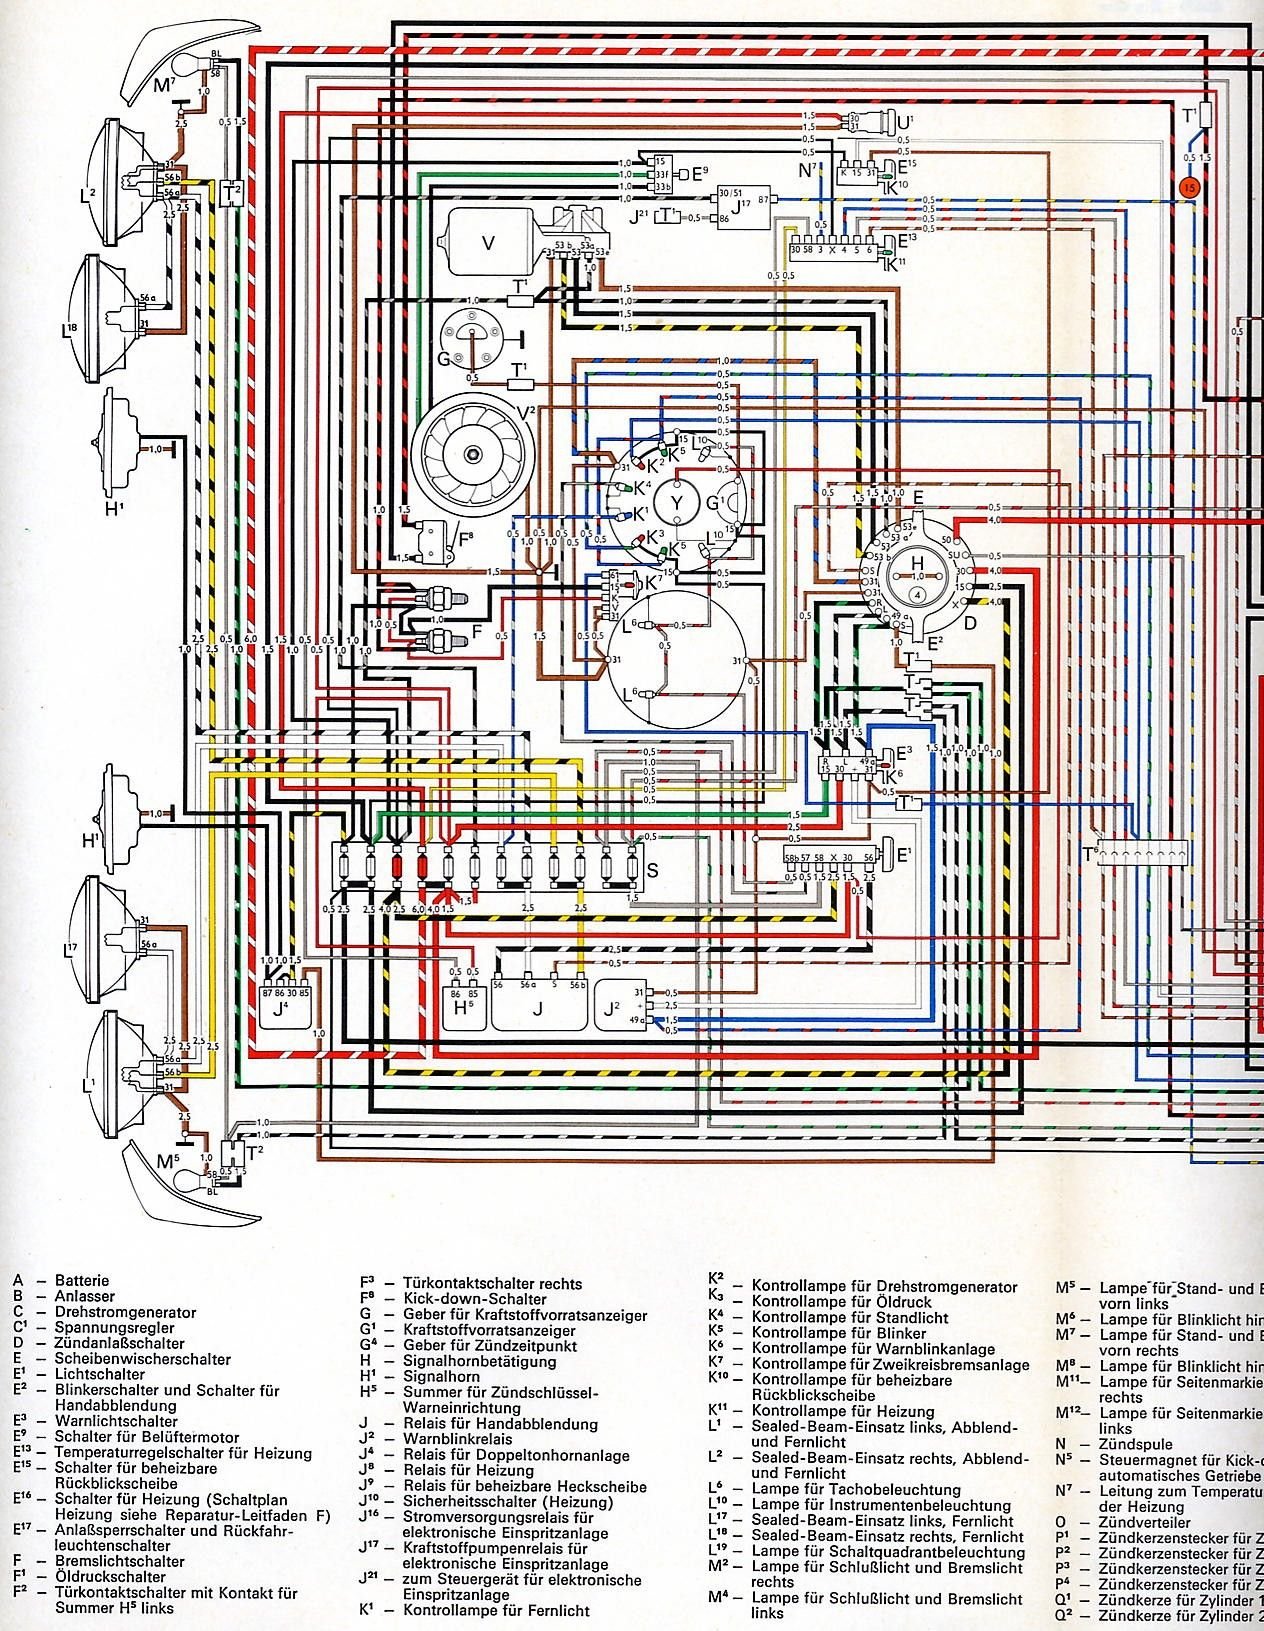 2007 Saab 9 5 Wiring Diagram Flood Light Wiring Diagram For Boat Wiring Diagram Schematics